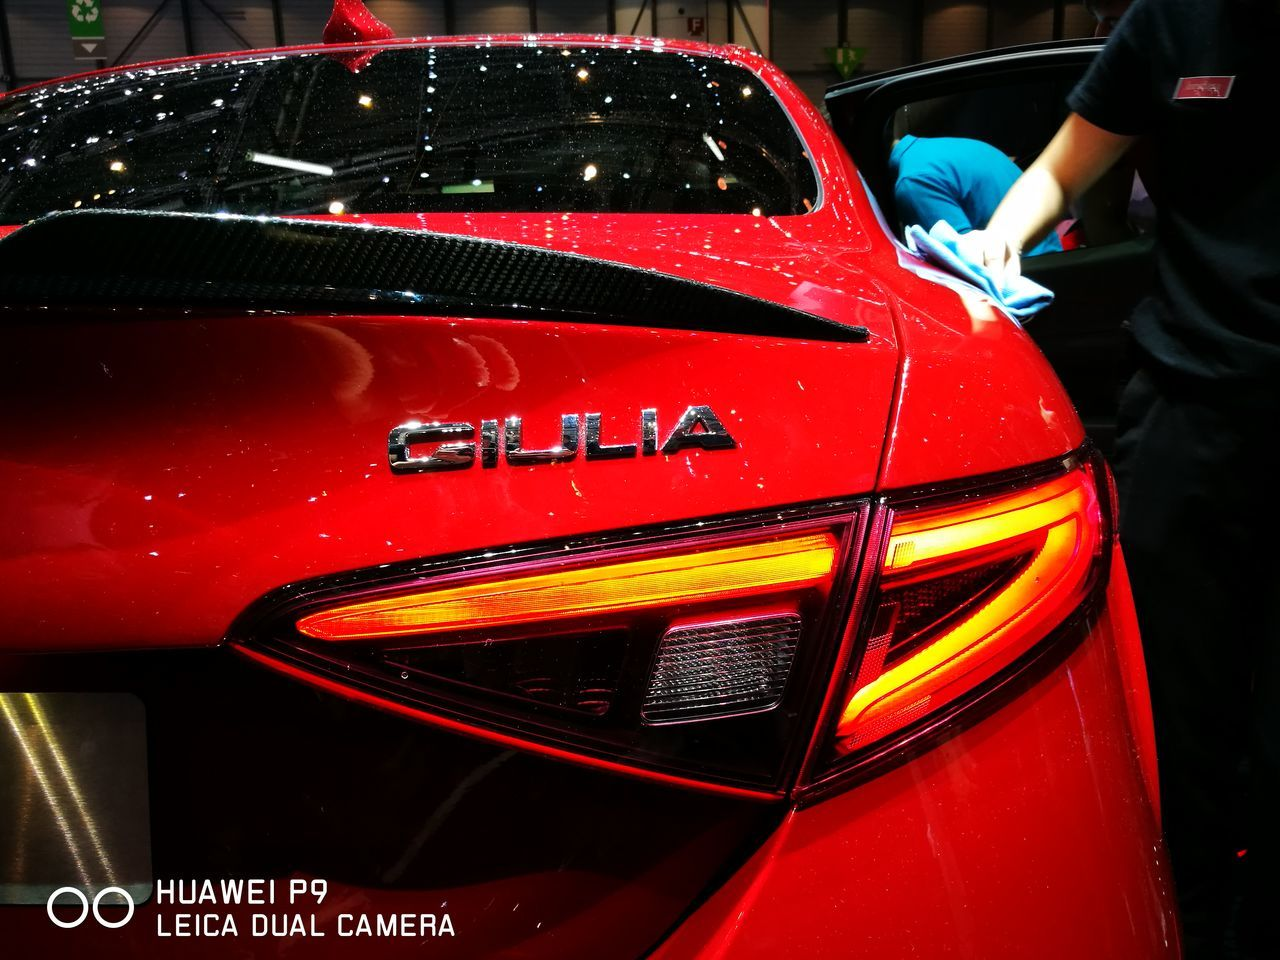 Millennial Pink Red Transportation Car Adults Only People Day Cockpit Outdoors Adult Red Carpet Event Geneve Switzerland Saloon <3 Alfaromeo Giulia Quadrifoglio Quadrifoglioverde Mood No People Illuminated Nature On Your Doorstep First Eyeem Photo Only Men Low Section